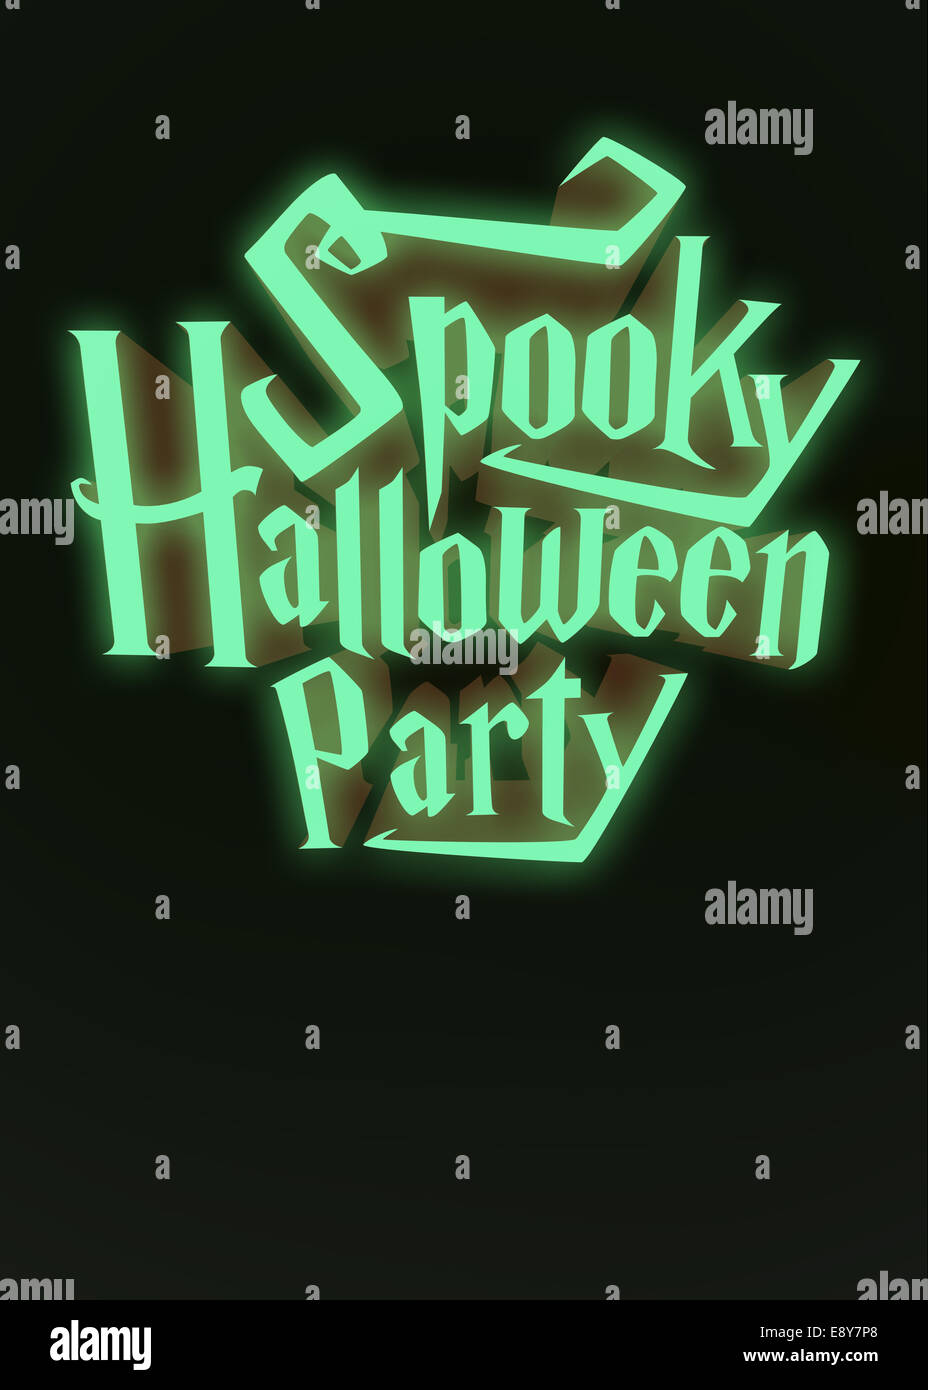 Spooky Halloween Party glowing neon letters 3d for poster template or Ad element on dark green background - Stock Image